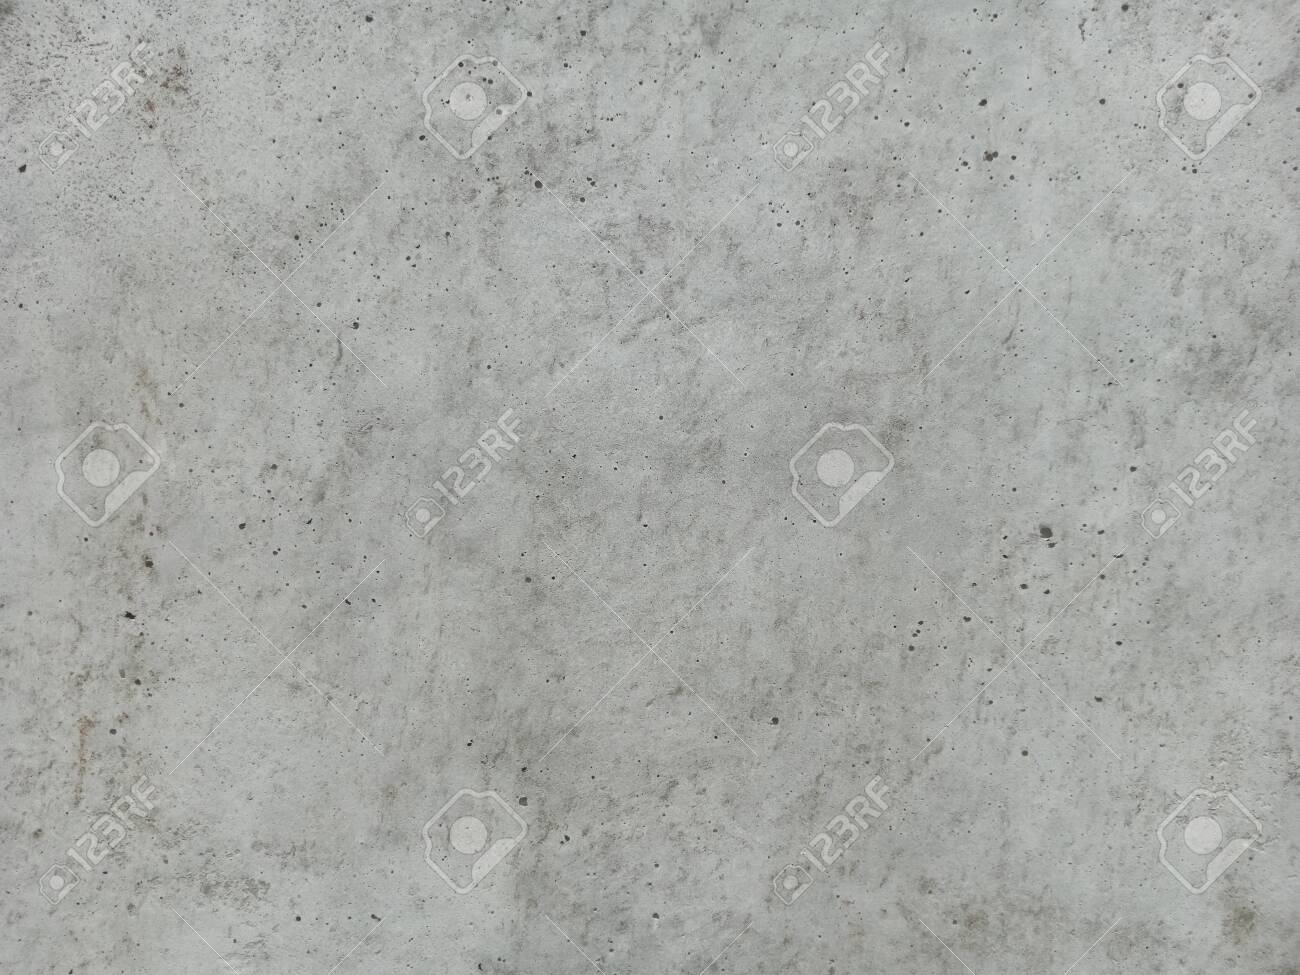 Concrete surface using steel formwork Oil the coating to prevent the concrete from sticking. - 123832119